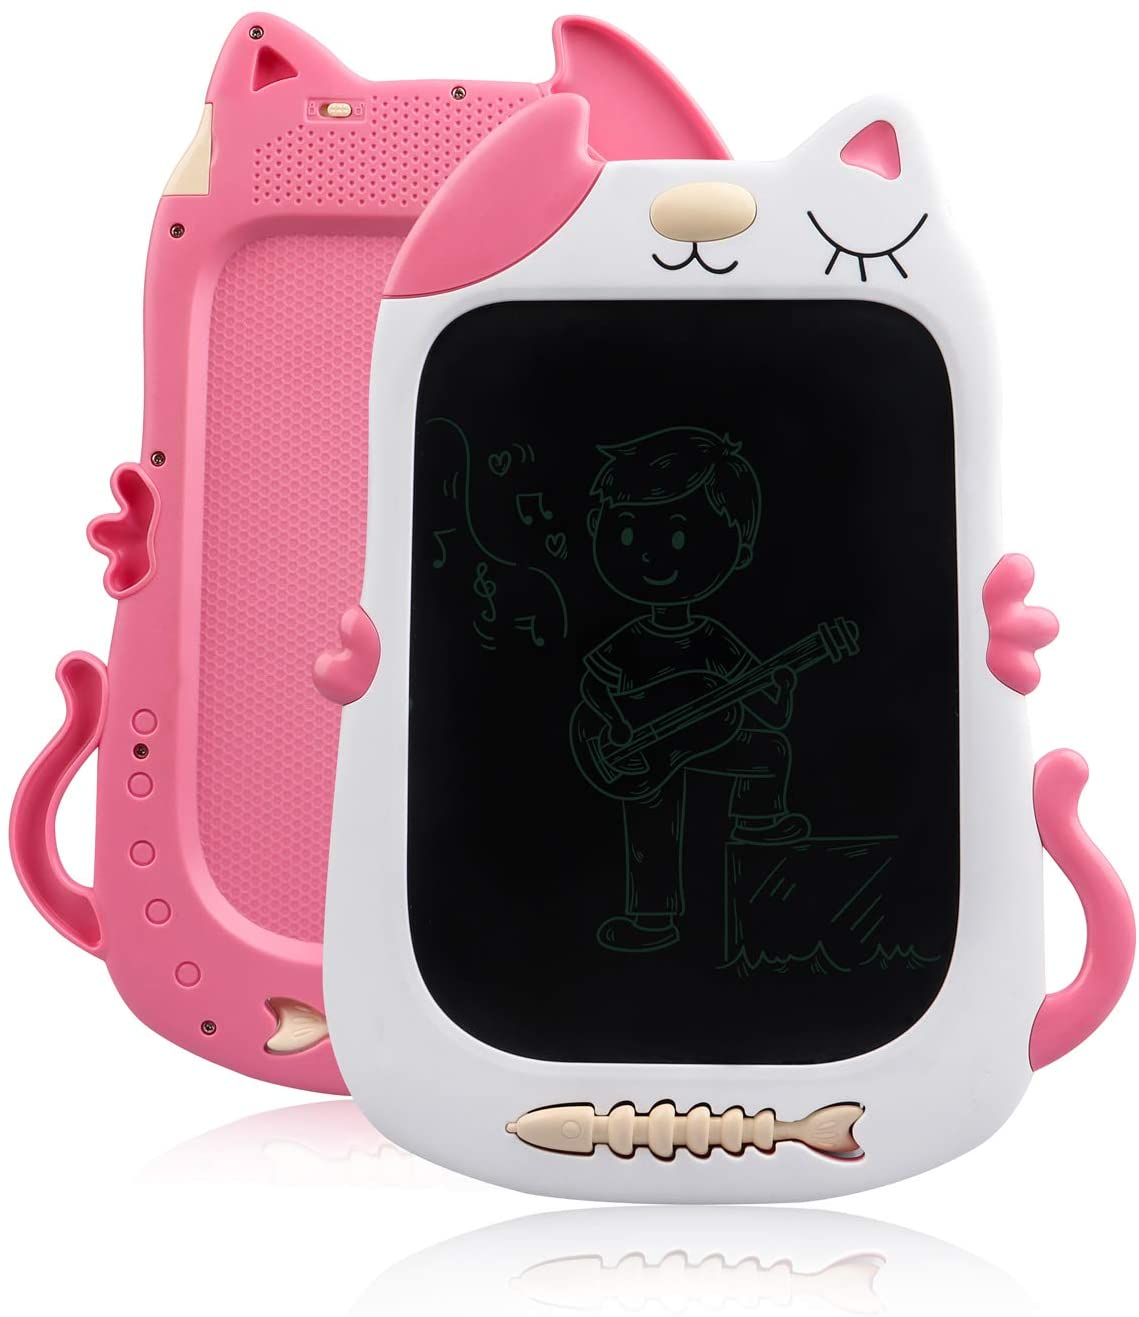 TENOL Girl Toys for 3-6 Year Old Girls Gifts Age 3, Drawing Board LCD Doodle Board for 3-6 Year Old Girls Toys for Birthday Girls Toys Age 3-6 Kitty Pink